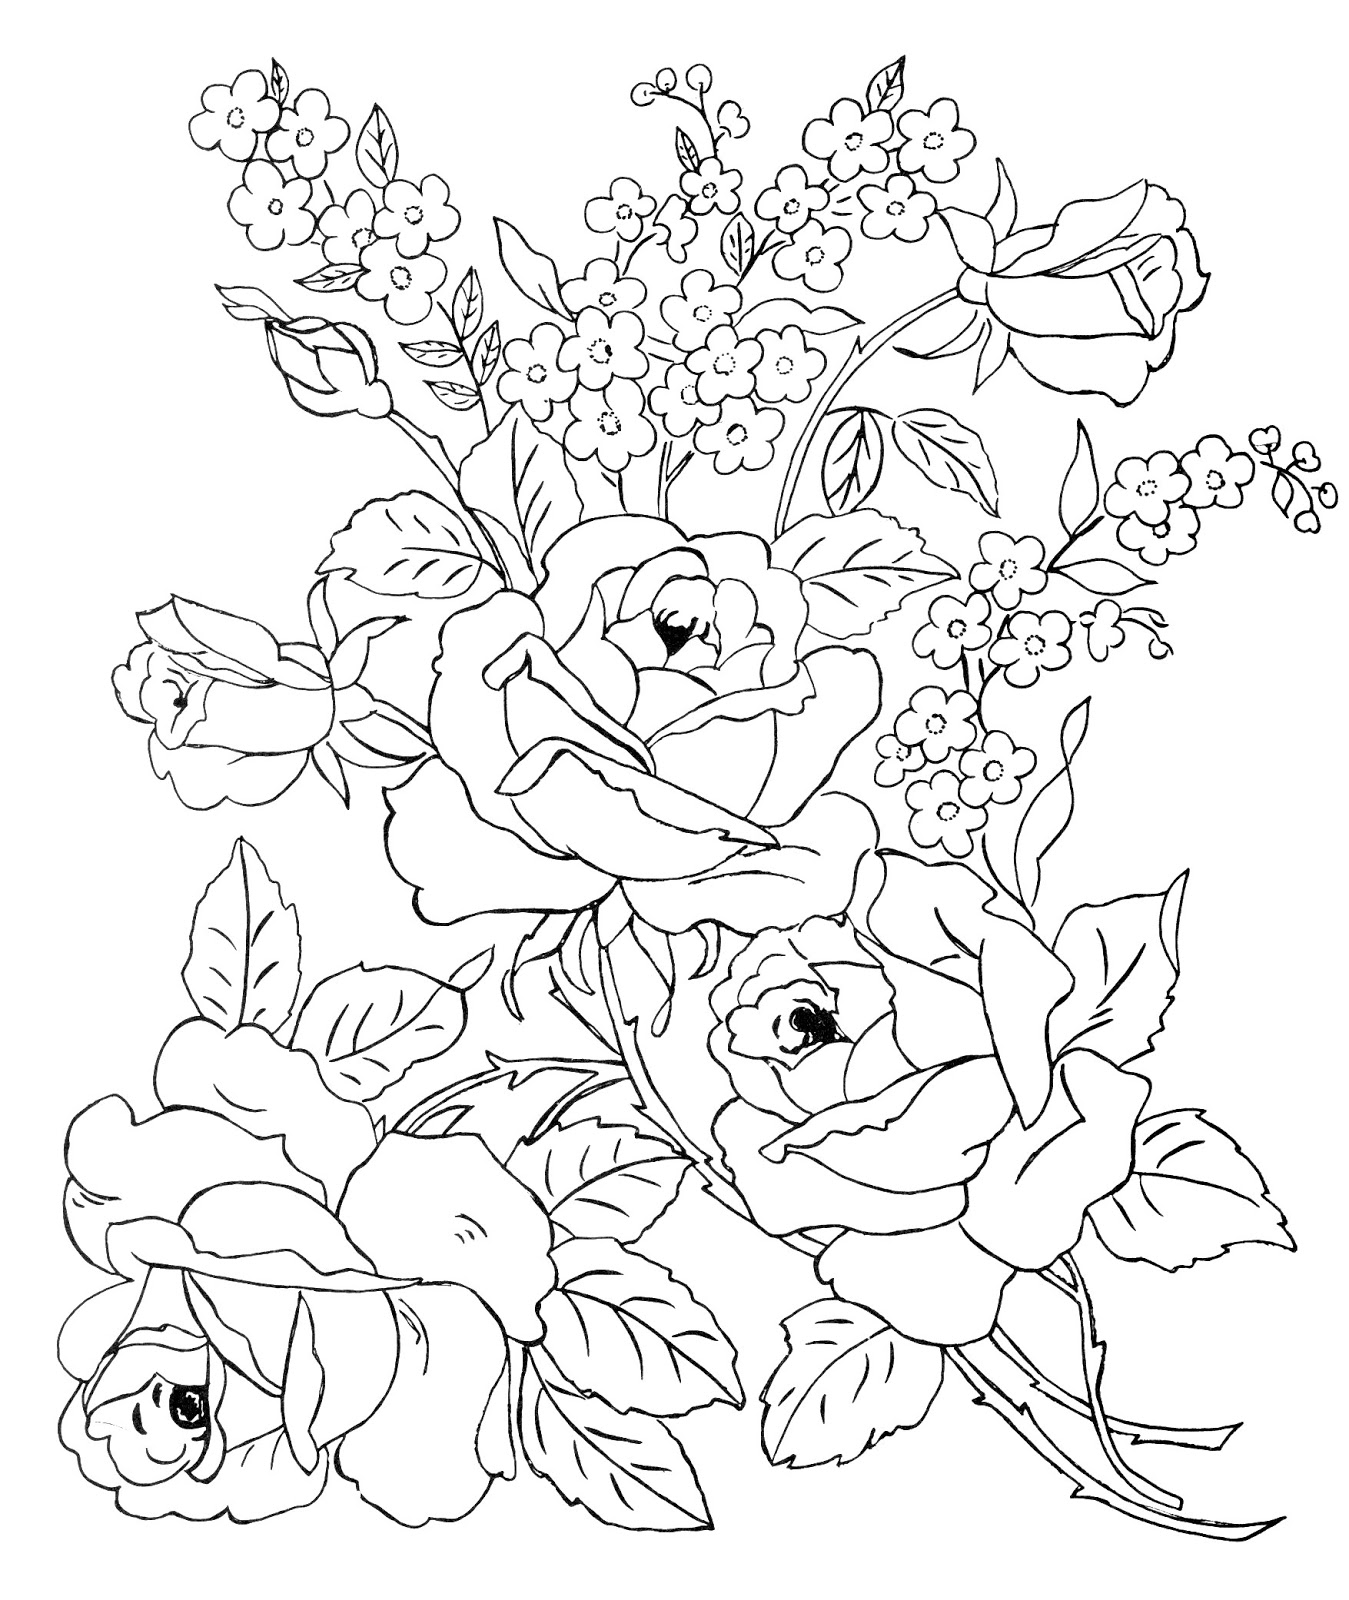 hard coloring pages of flowers - difficult isometric drawing exercises sketch coloring page